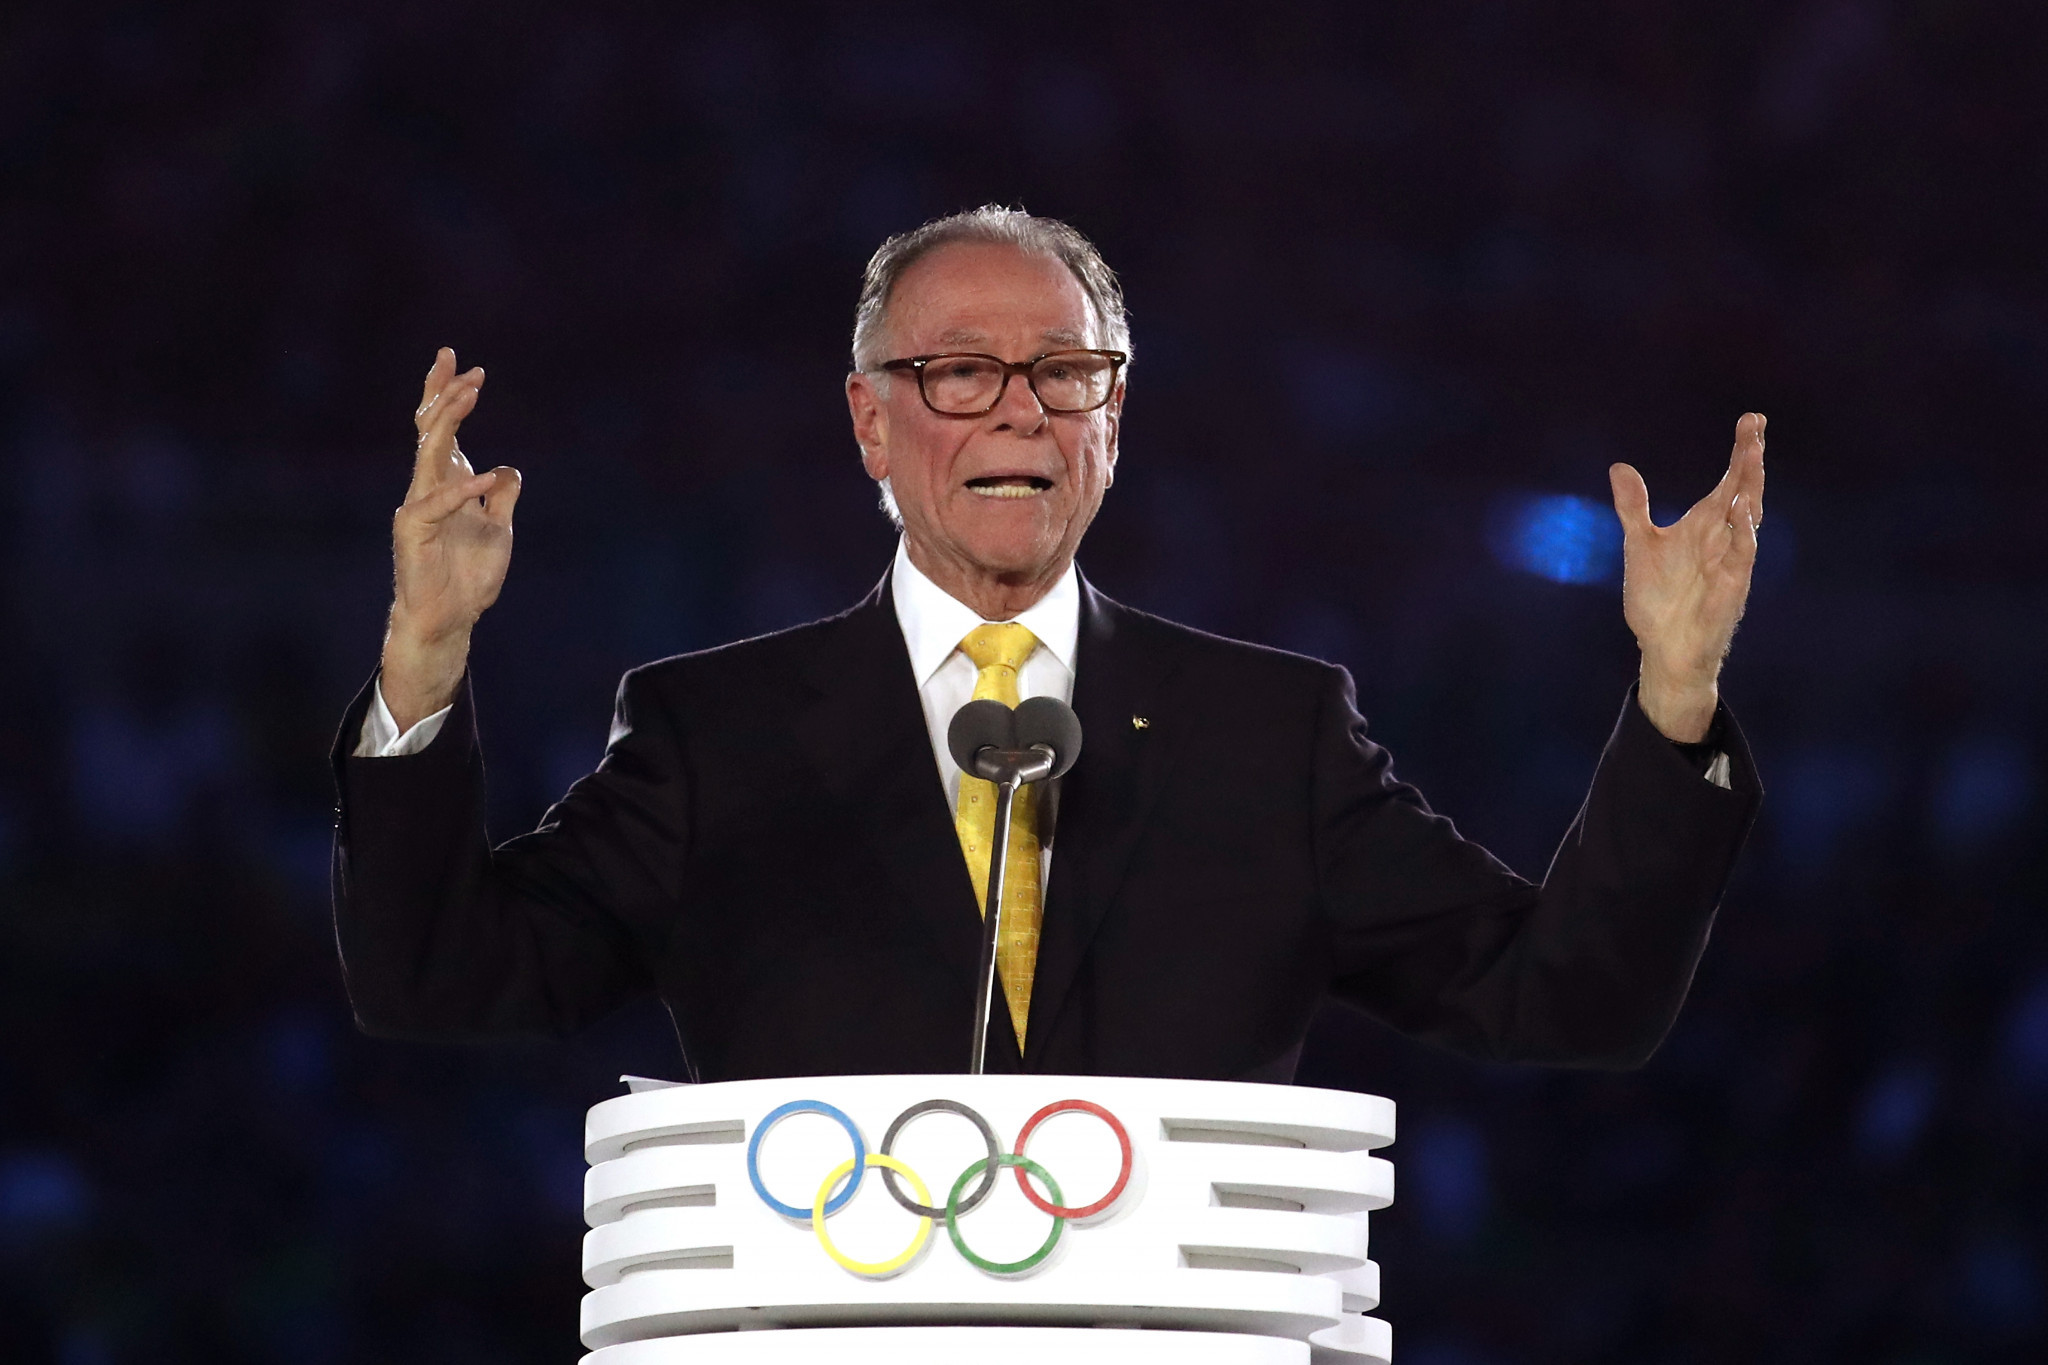 Rio 2016 President Carlos Nuzman was implicated in a Brazilian investigation last month ©Getty Images